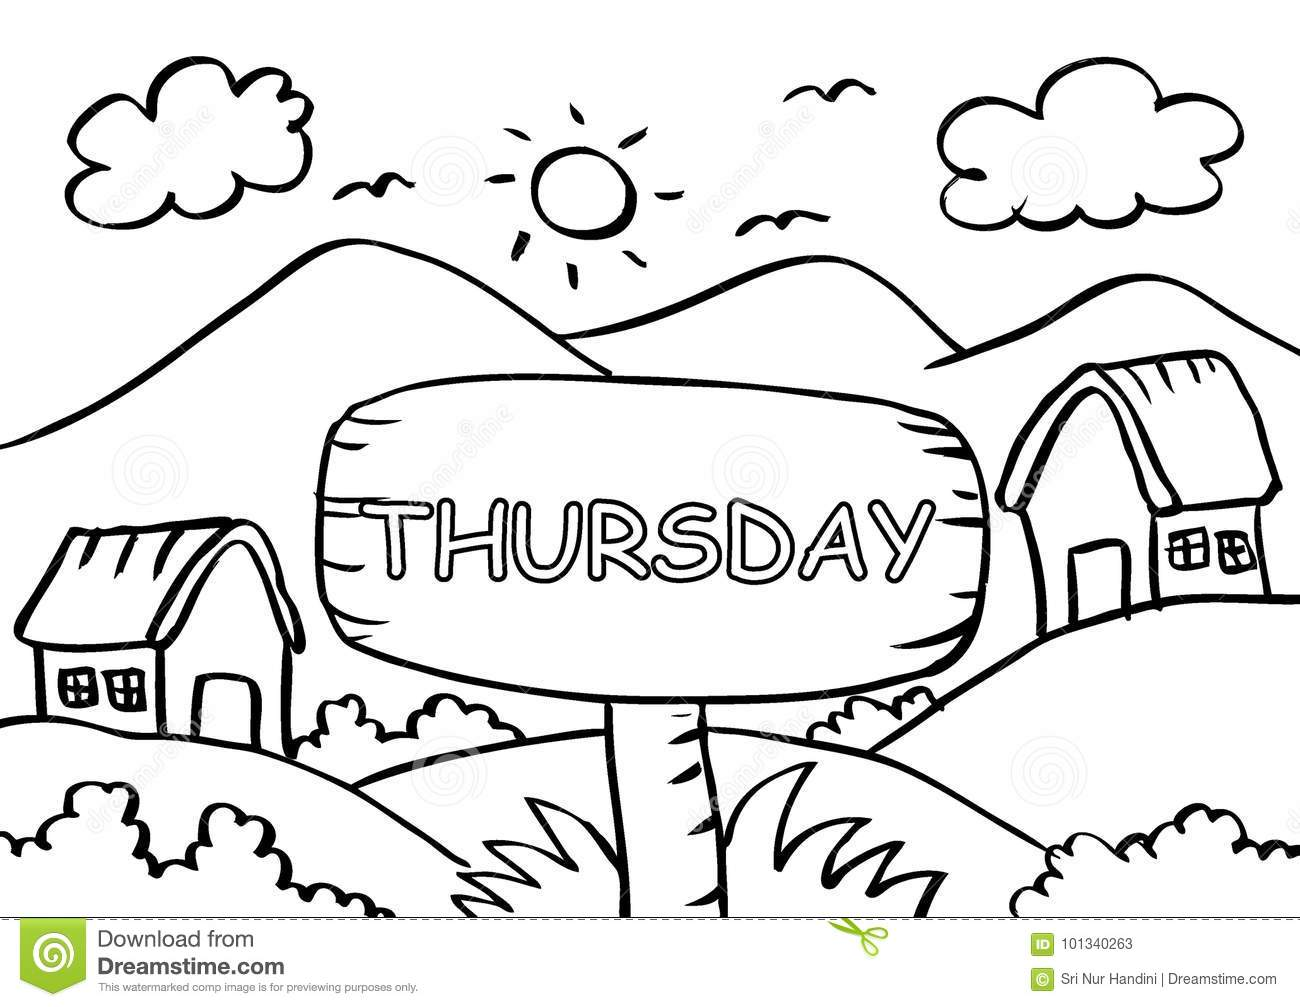 Thursday Coloring Page With Landscape Mountain Stock Vector